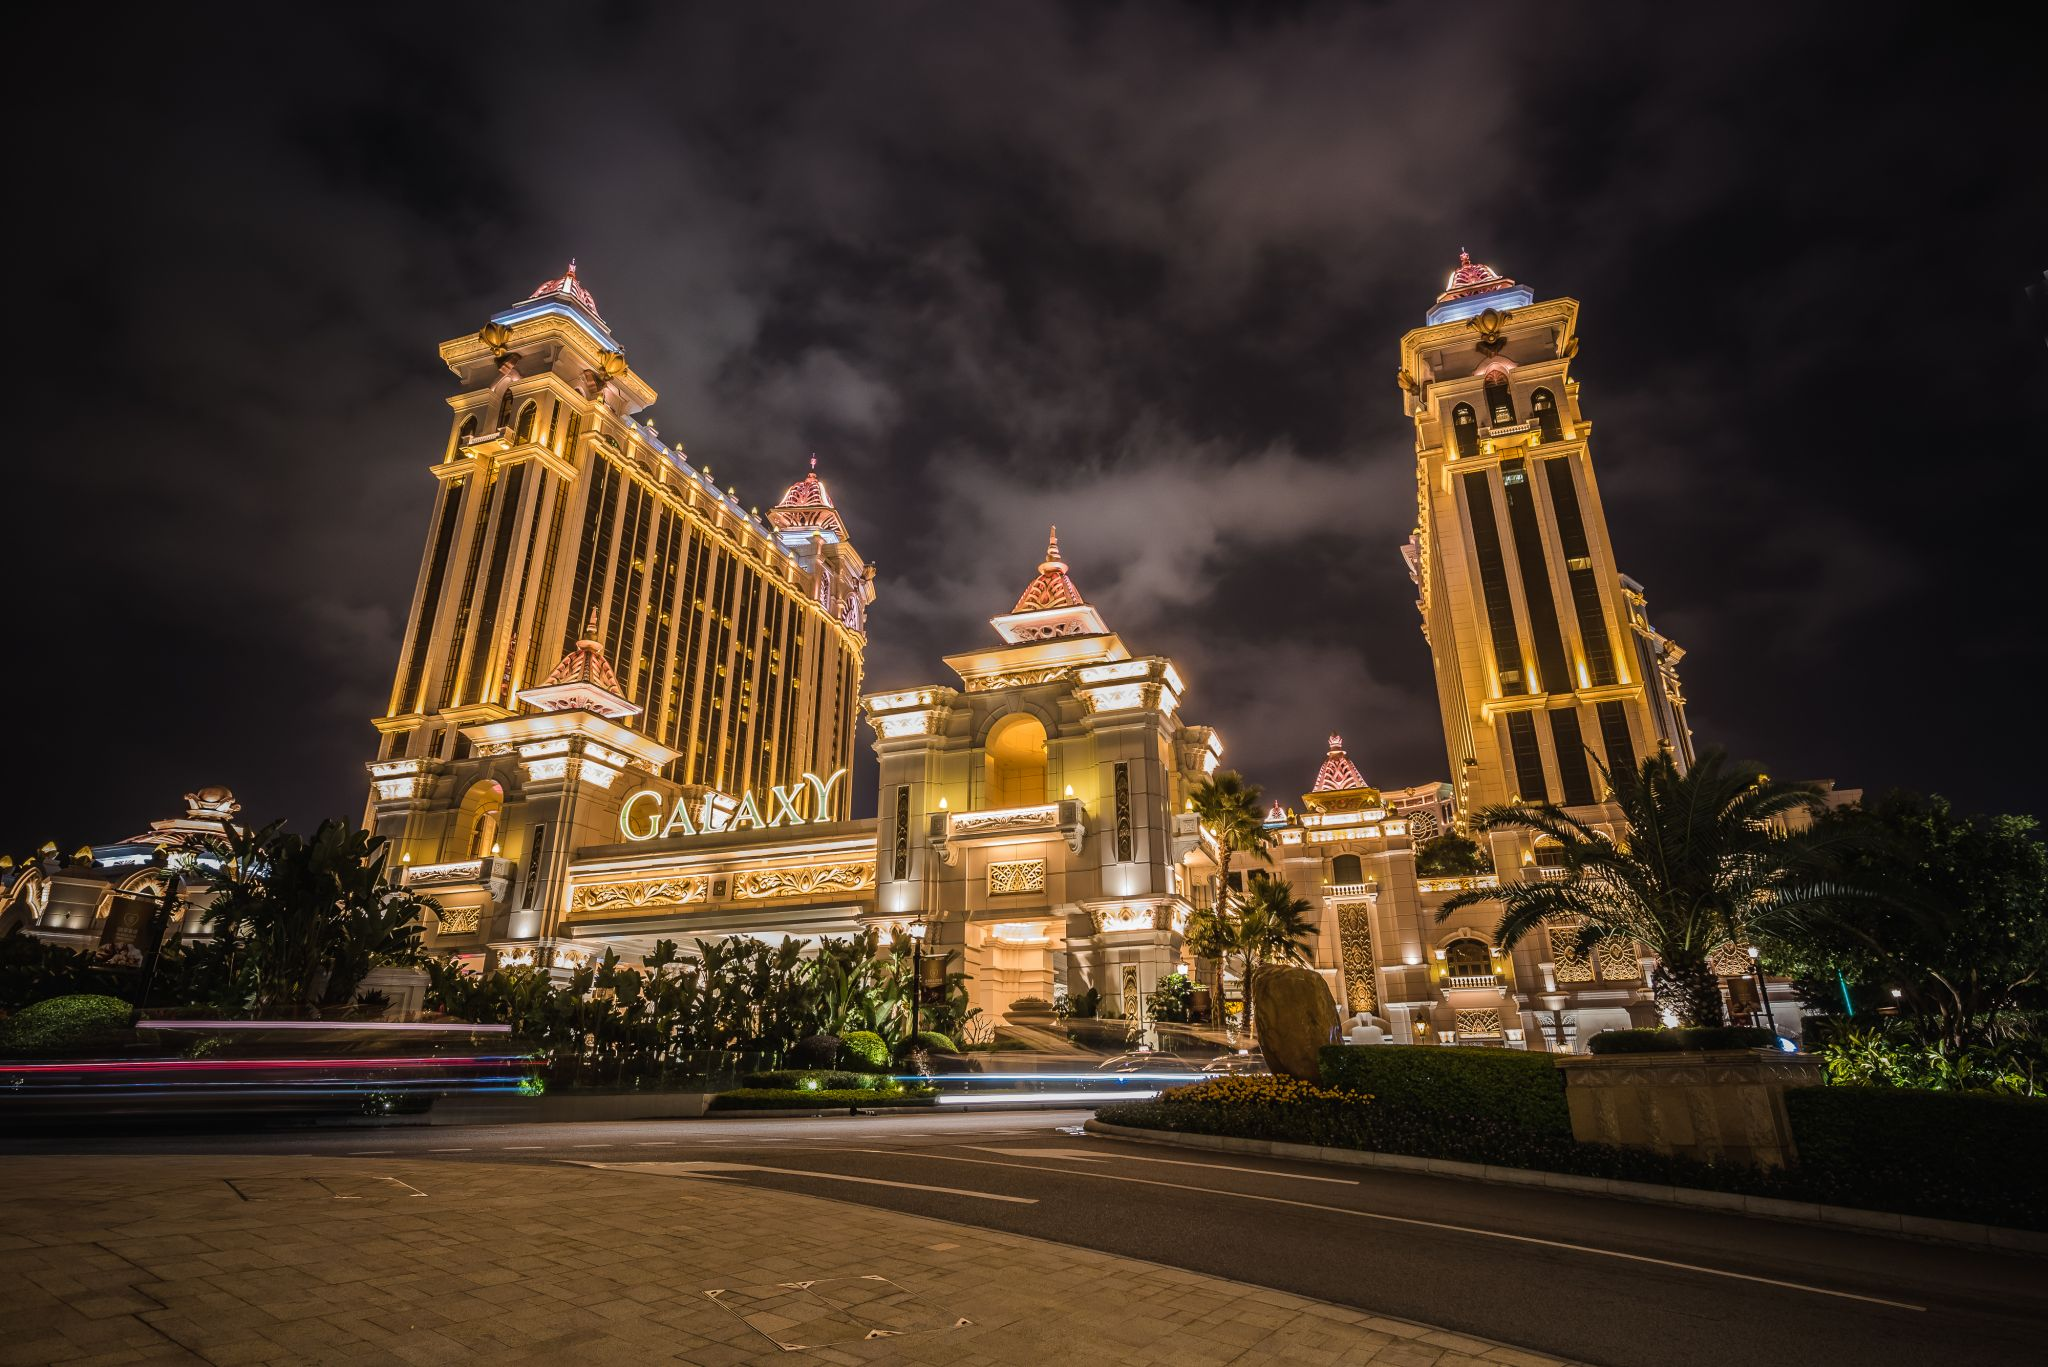 Macau, asia's las vegas, is packed with casinos, culture and tasty food